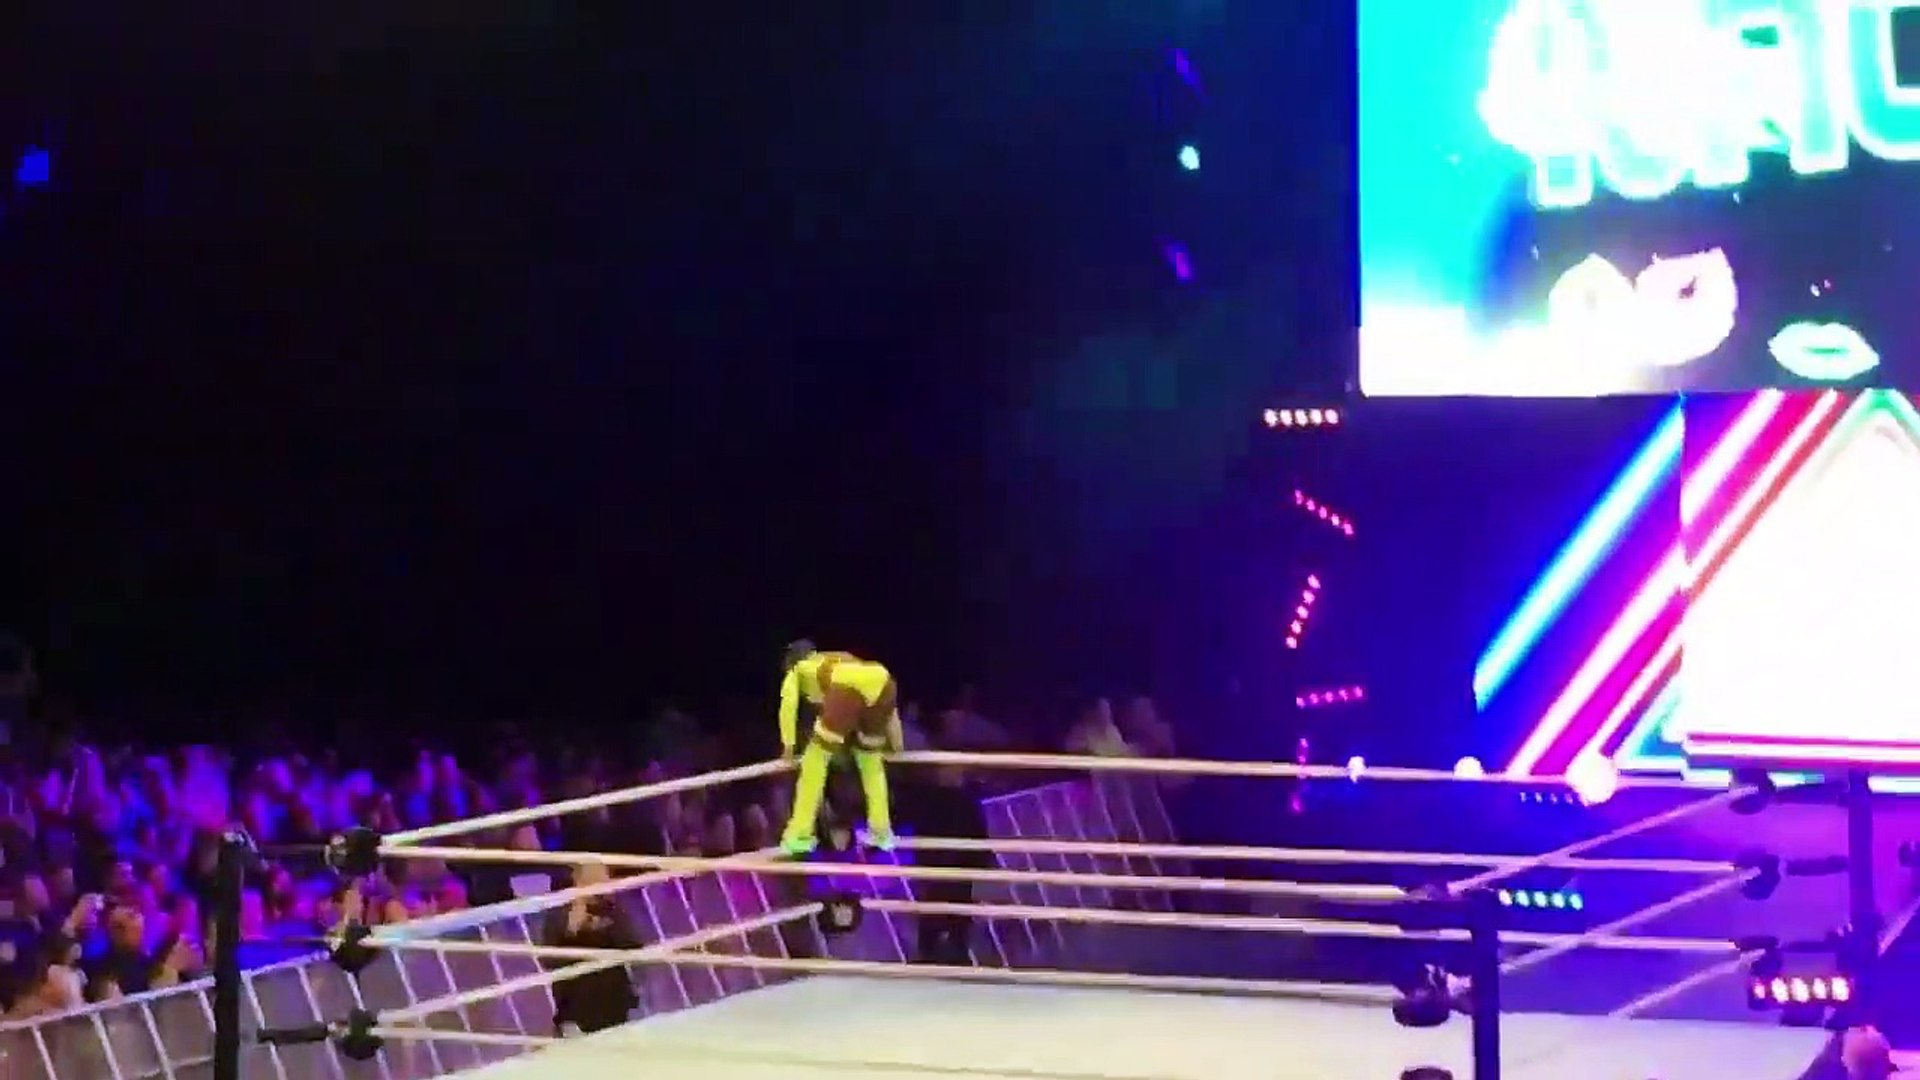 WWE Live Event Dublin 9 May 2019 FULL-SHOW Highlights HD - WWE Live Highlights 9 May 2019 HD